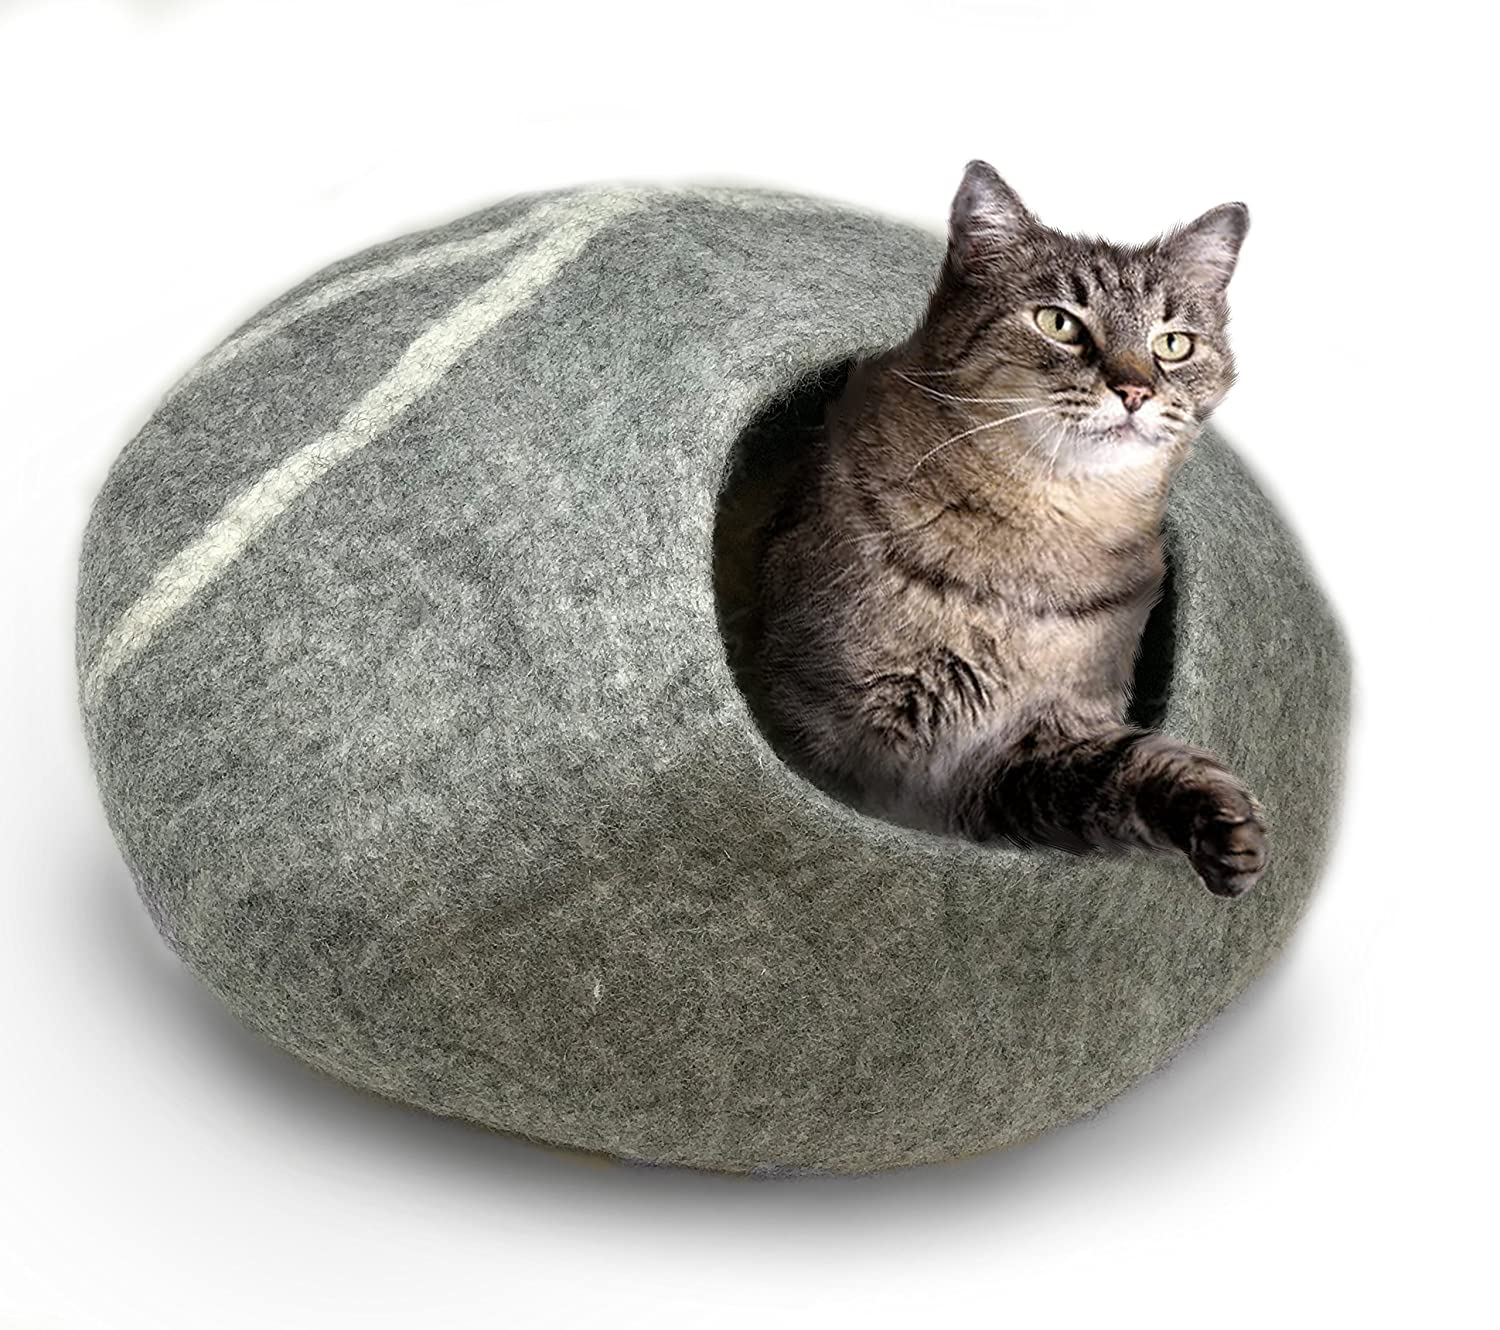 100% Natural Wool Large Cat Cave - Handmade Premium Shaped Felt - Makes Great Covered Cat House and Bed for Kitty. for Indoor Cozy Hideaway. Large Pod Soft Hooded Bed Area. Large) (Light Gray) iPrimio